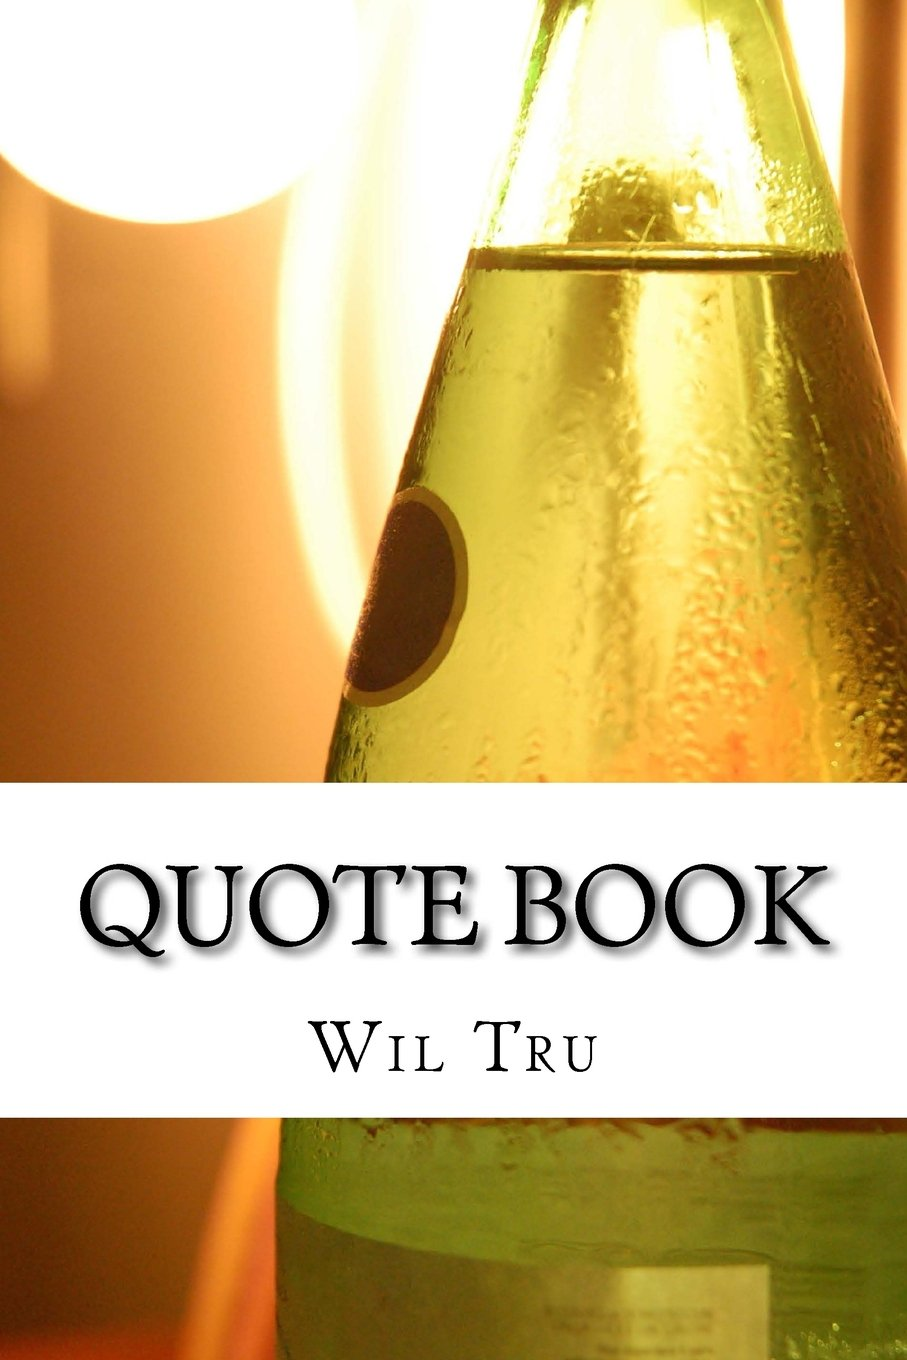 Quote Book Book Of 1000 Quotes To Help You Find Inspiration